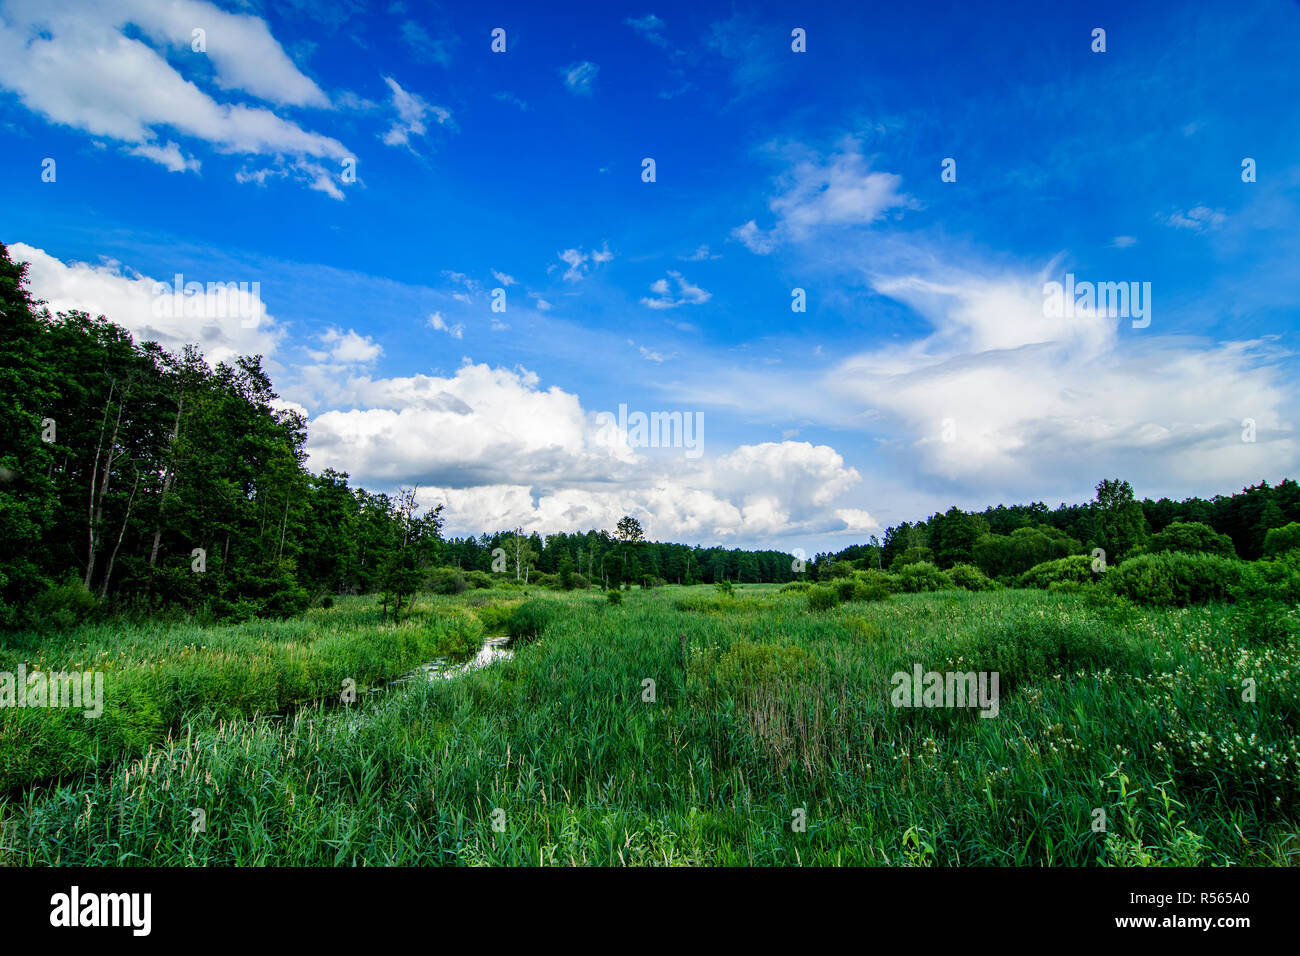 Narewka river valley in Bialowieza National Park. July, 2017. - Stock Image